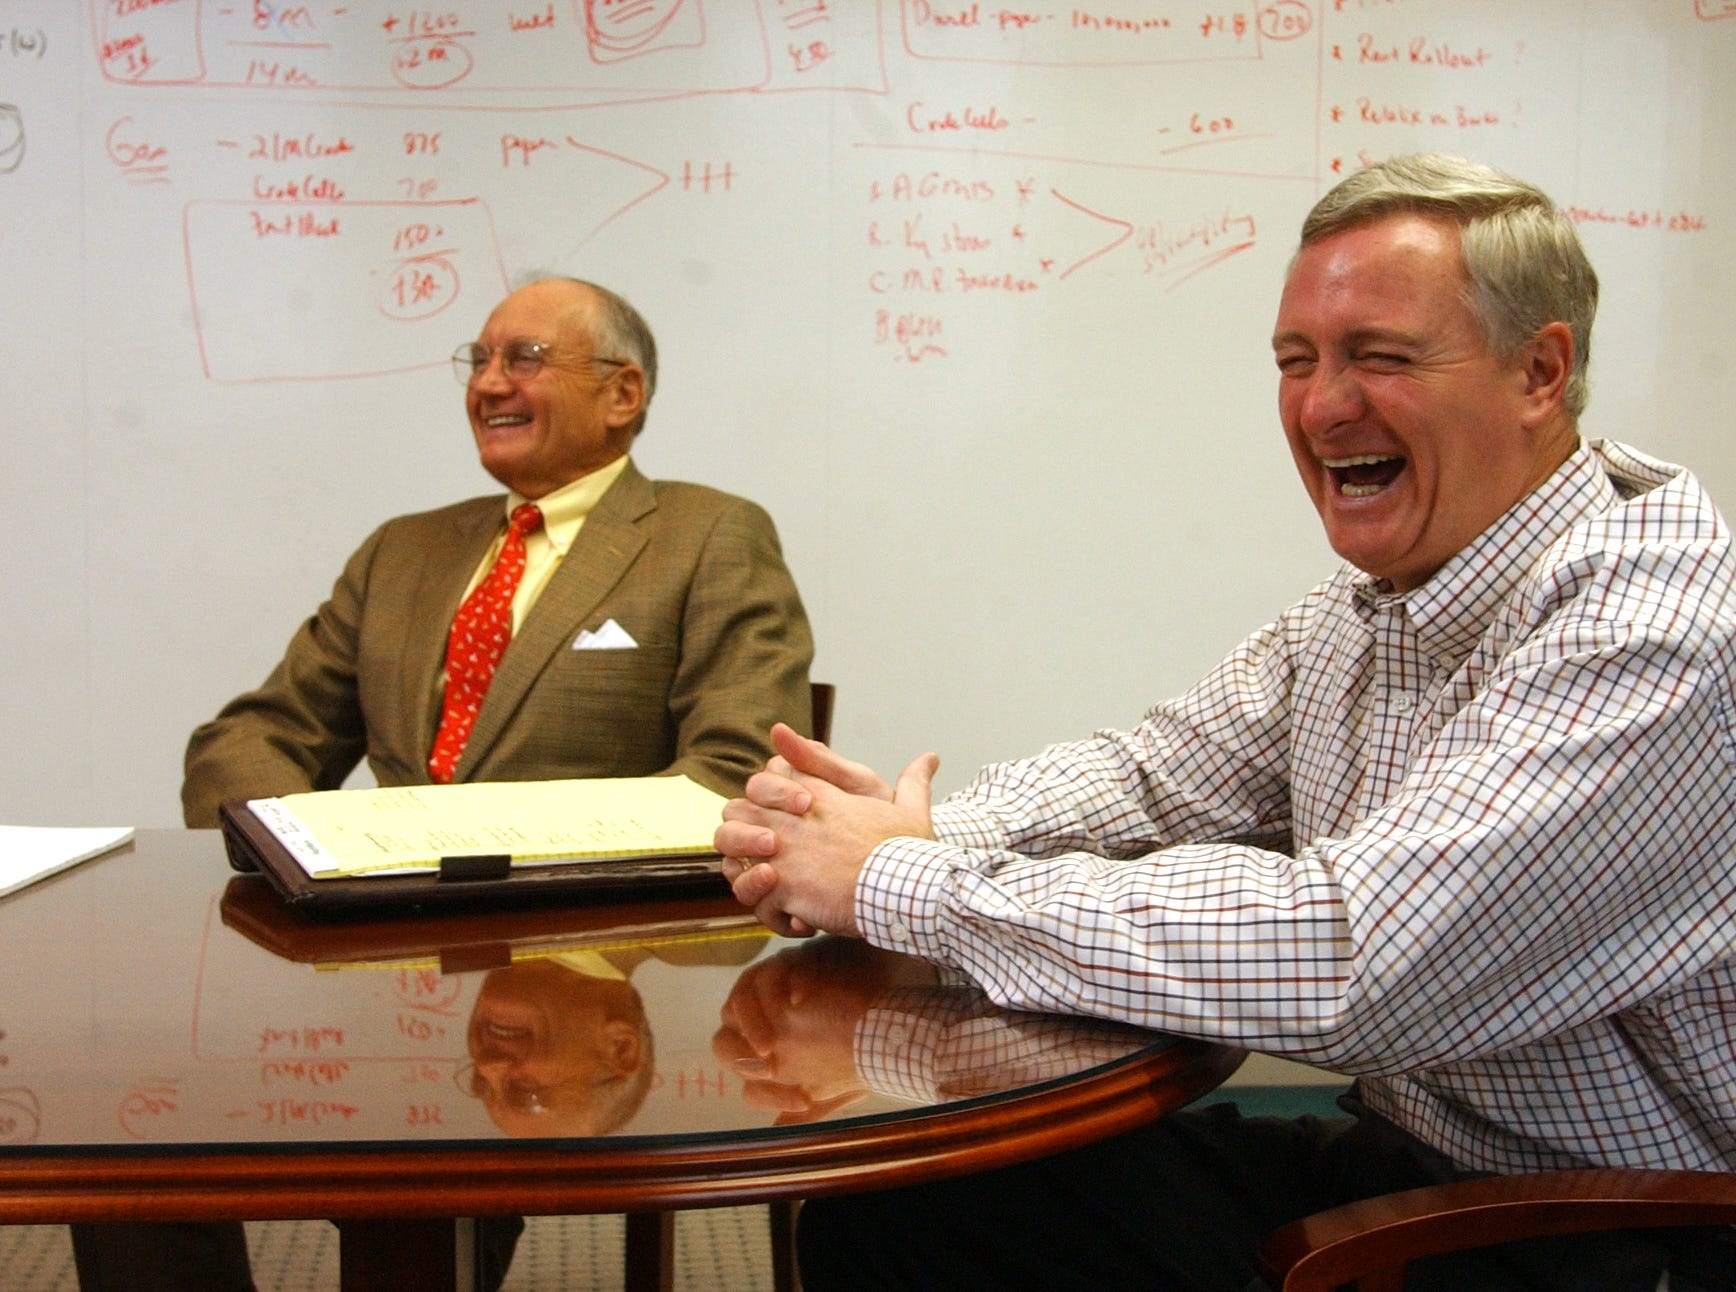 Pilot Travel Centers LLC President Jimmy Haslam, right, with his father and Pilot  Corp. founder, Jim Haslam, talks about the $190 million deal to acquire 60 travel centers from rival Williams Travel Centers Inc. on July 23, 2001, at Pilot's Knoxville headquarters.